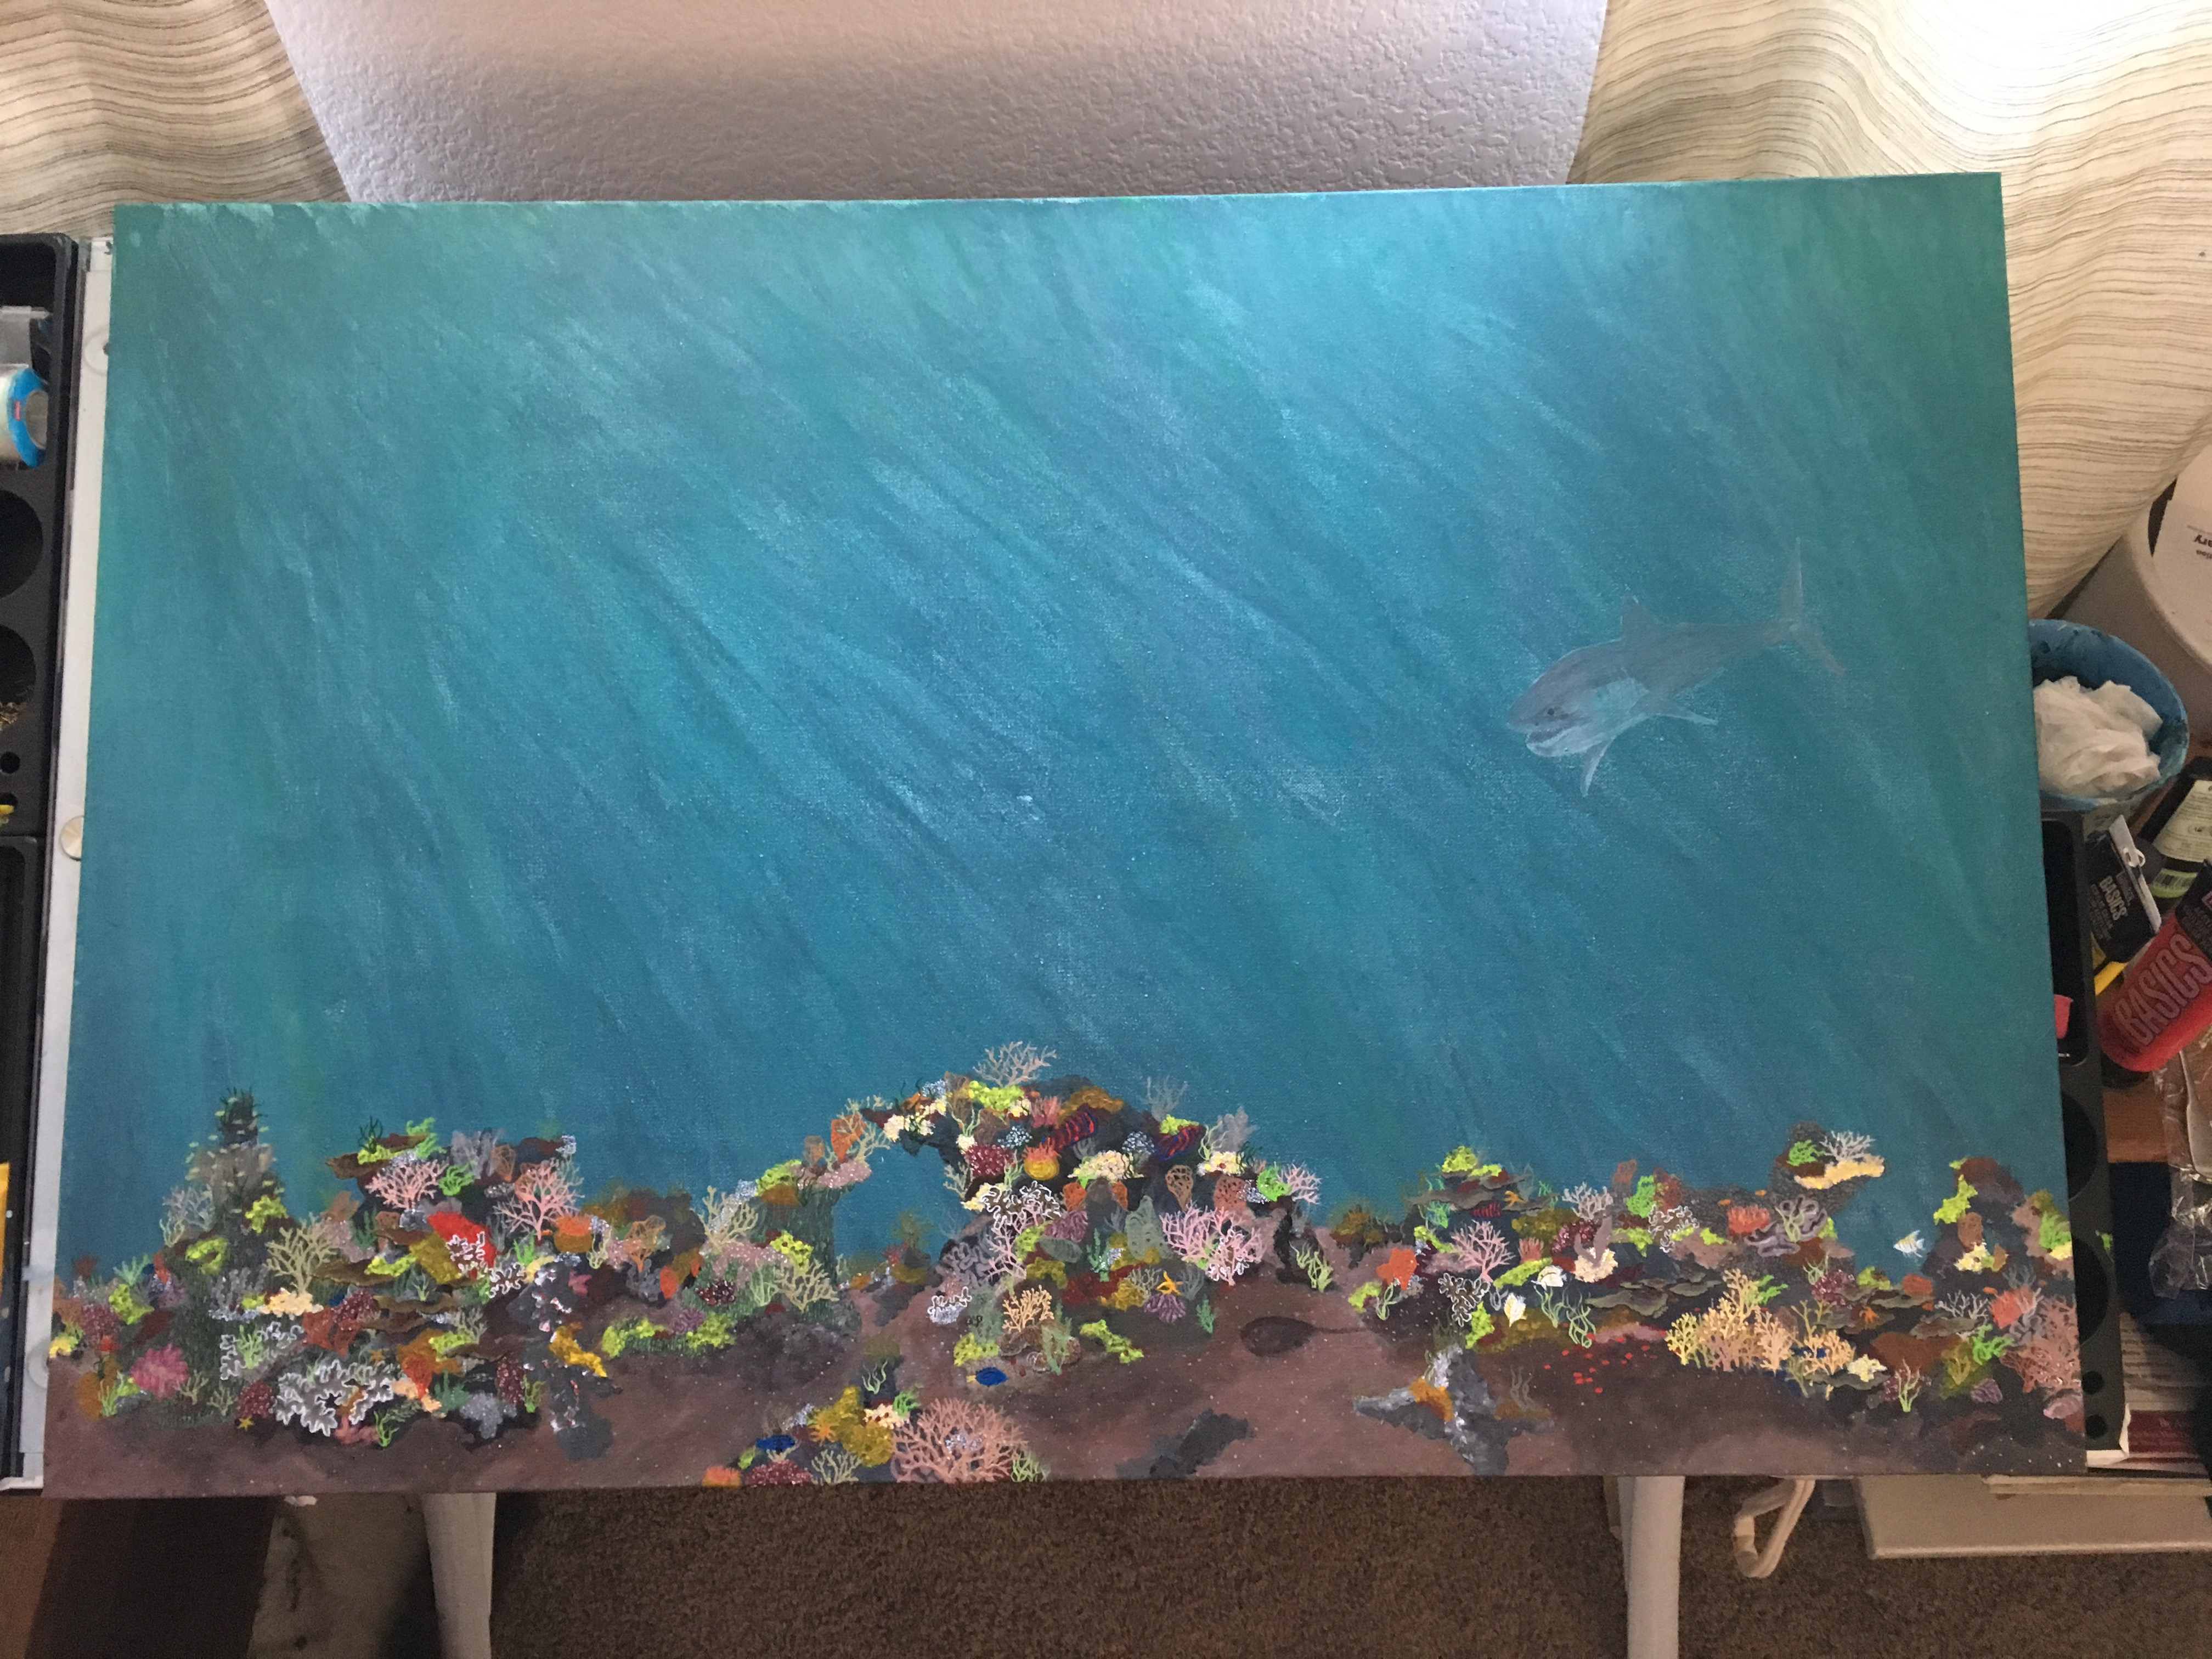 Closer to being done with the coral